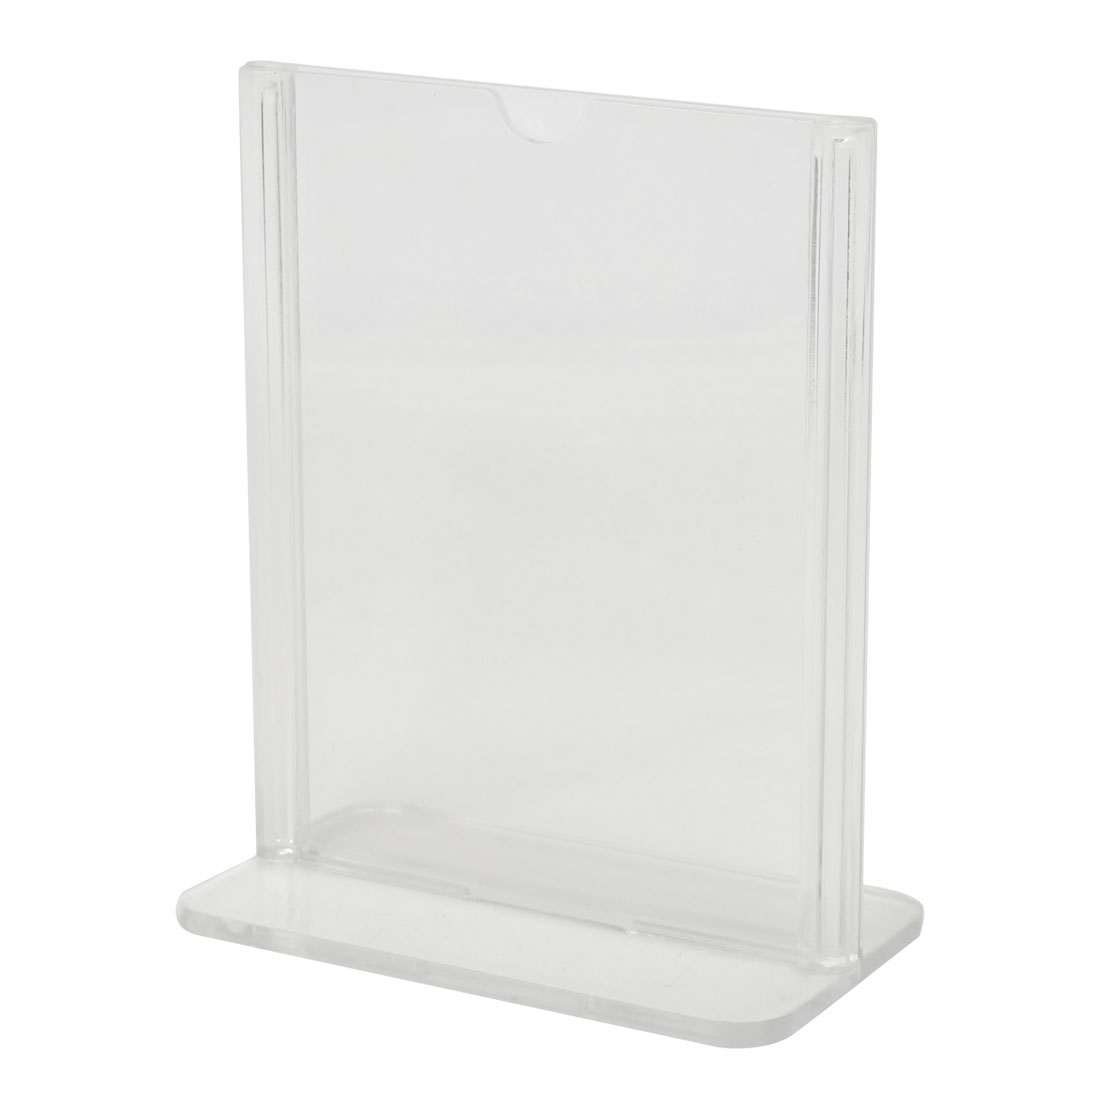 Clear Plastic 7.3cm x 10.5cm Standard Price Menu Display Holder